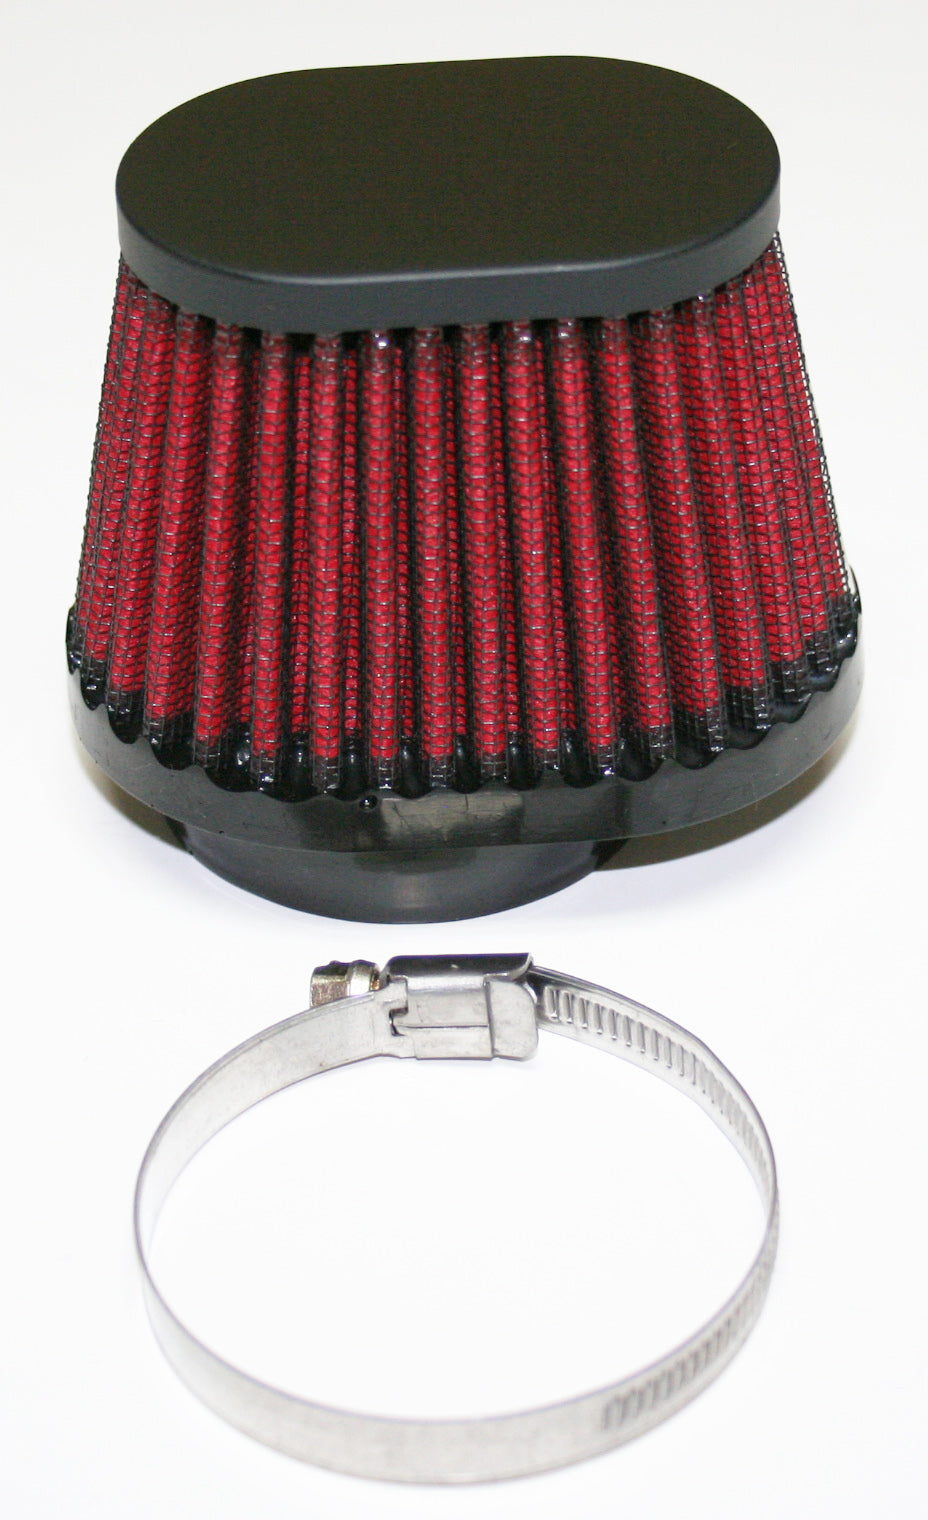 Black Oval Cap Air Filter 52mm With Red Filter Element - Goldwingparts.com